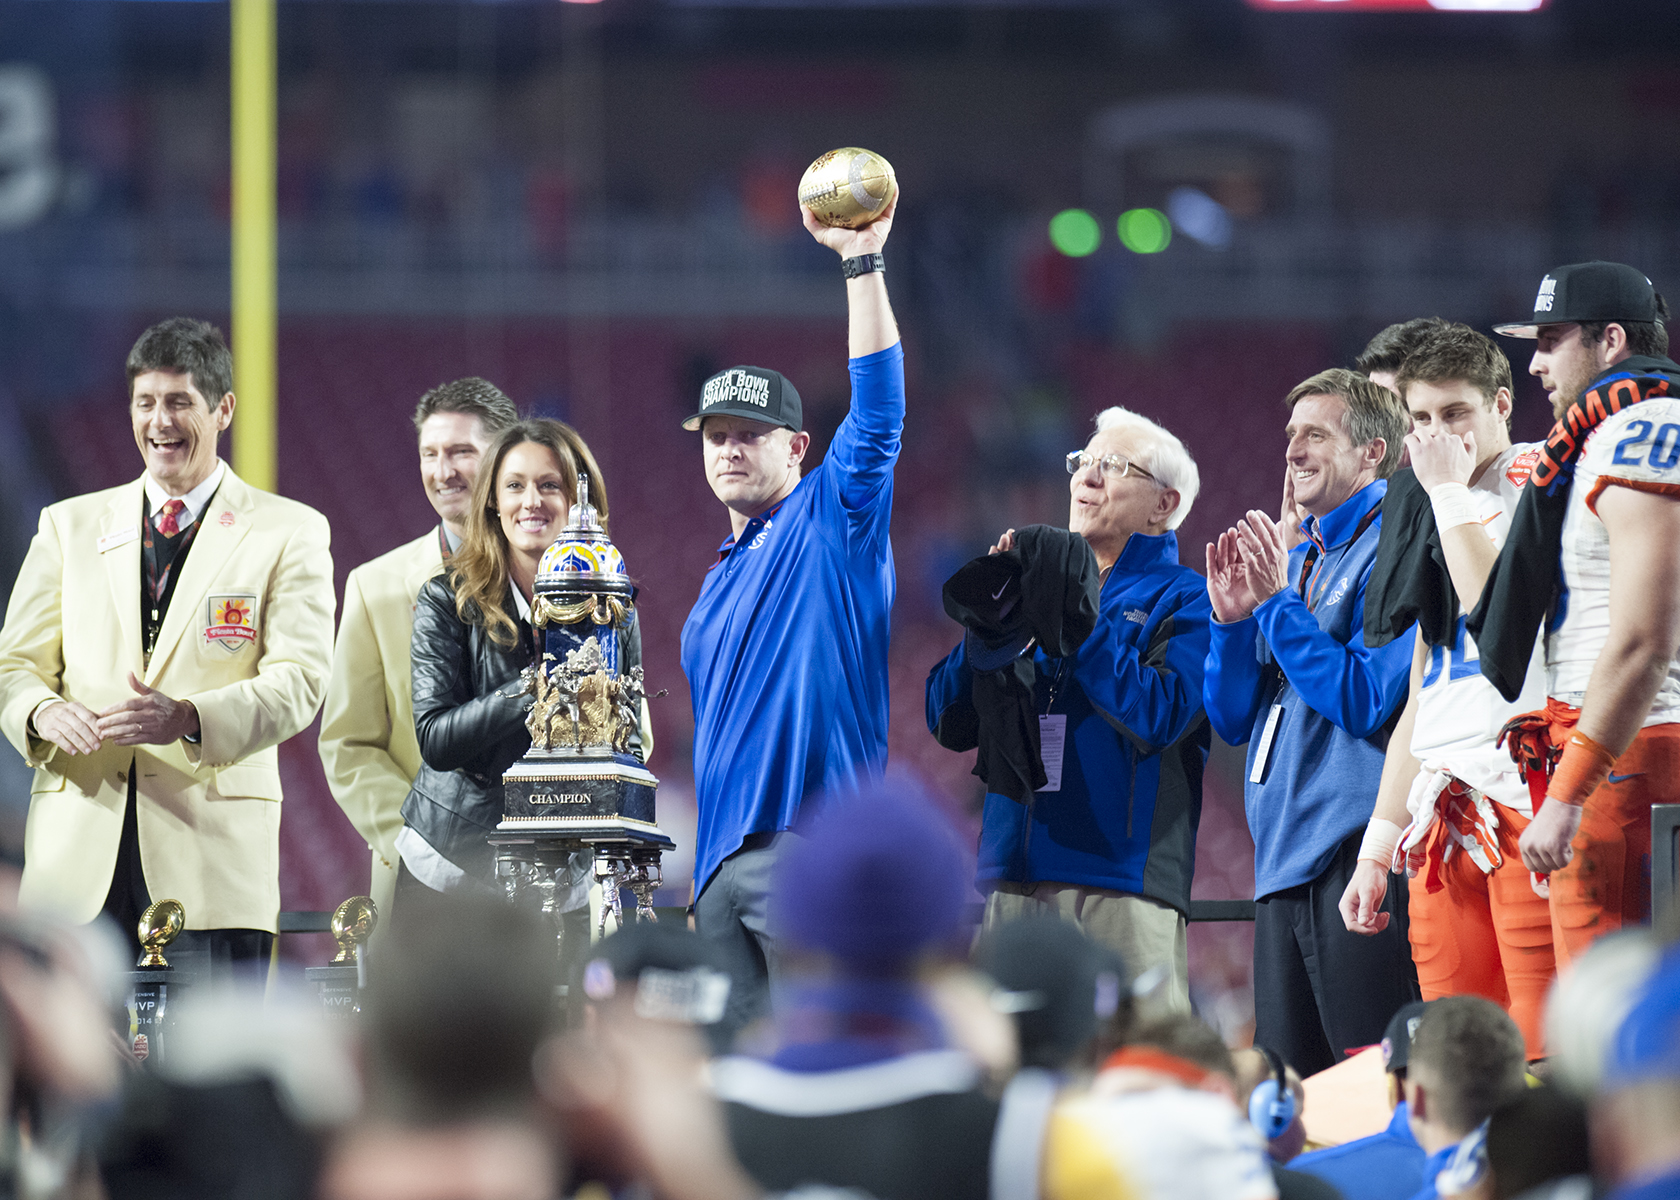 Coach Harsin holds football in the air at Fiesta Bowl